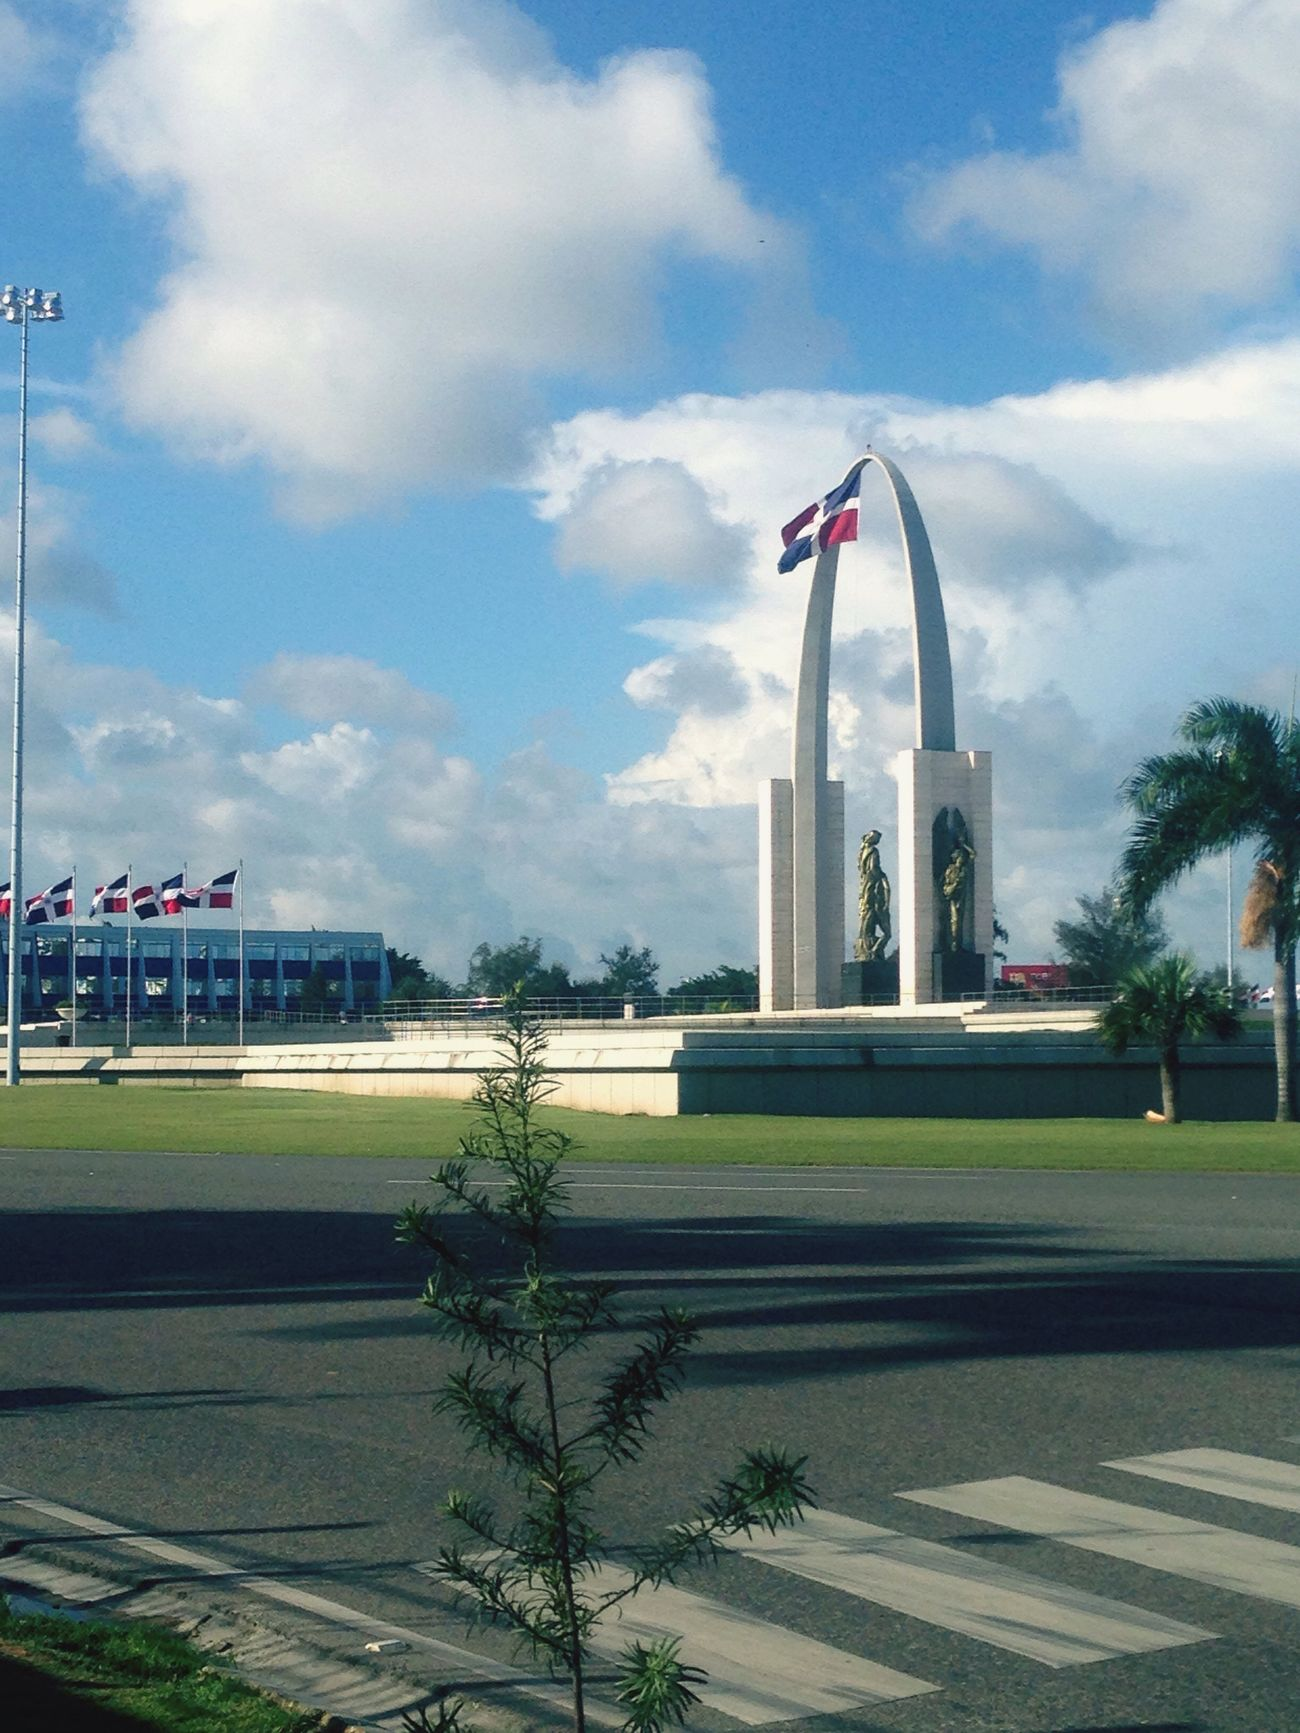 Plaza de la bandera 🇩🇴 Proud Dominican Republica Dominicana Beautiful Flag Blue White And Red PhonePhotography Walking Around